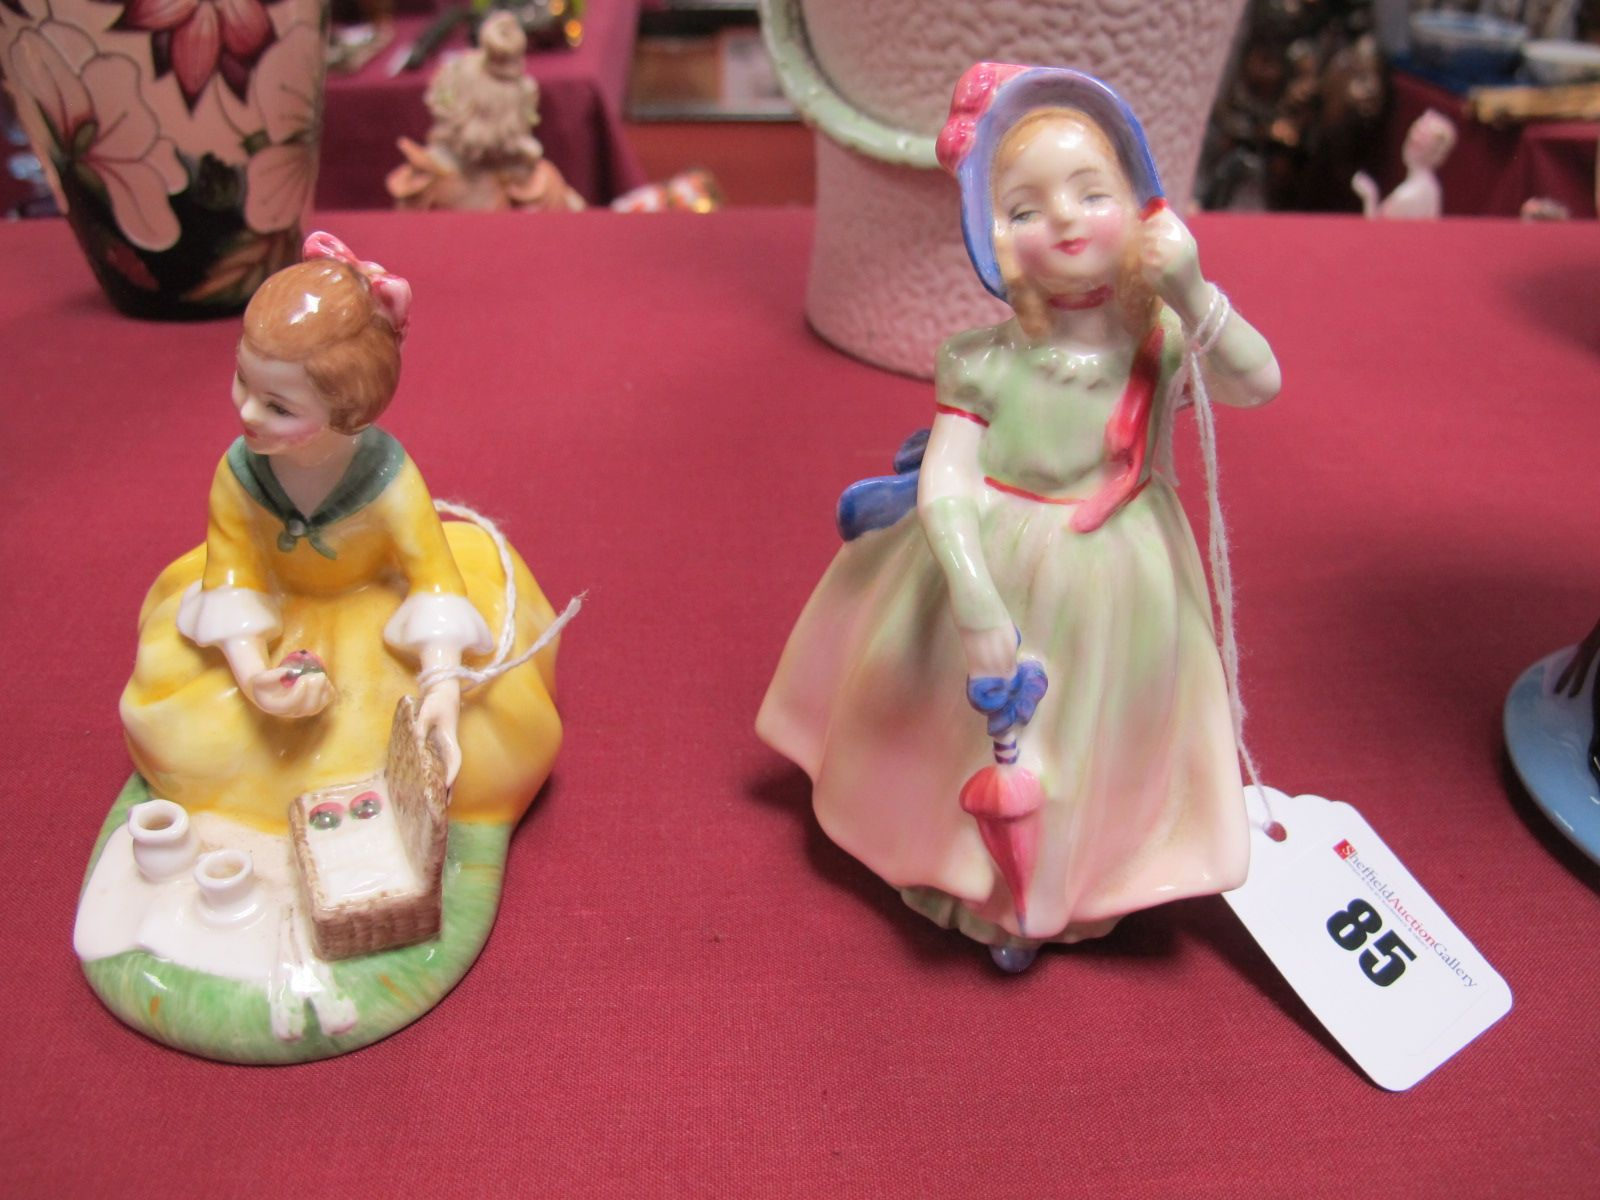 Lot 85 - Two Royal Doulton Figurines 'Picnic' HN2308 and 'Babie' HN1679. (2)